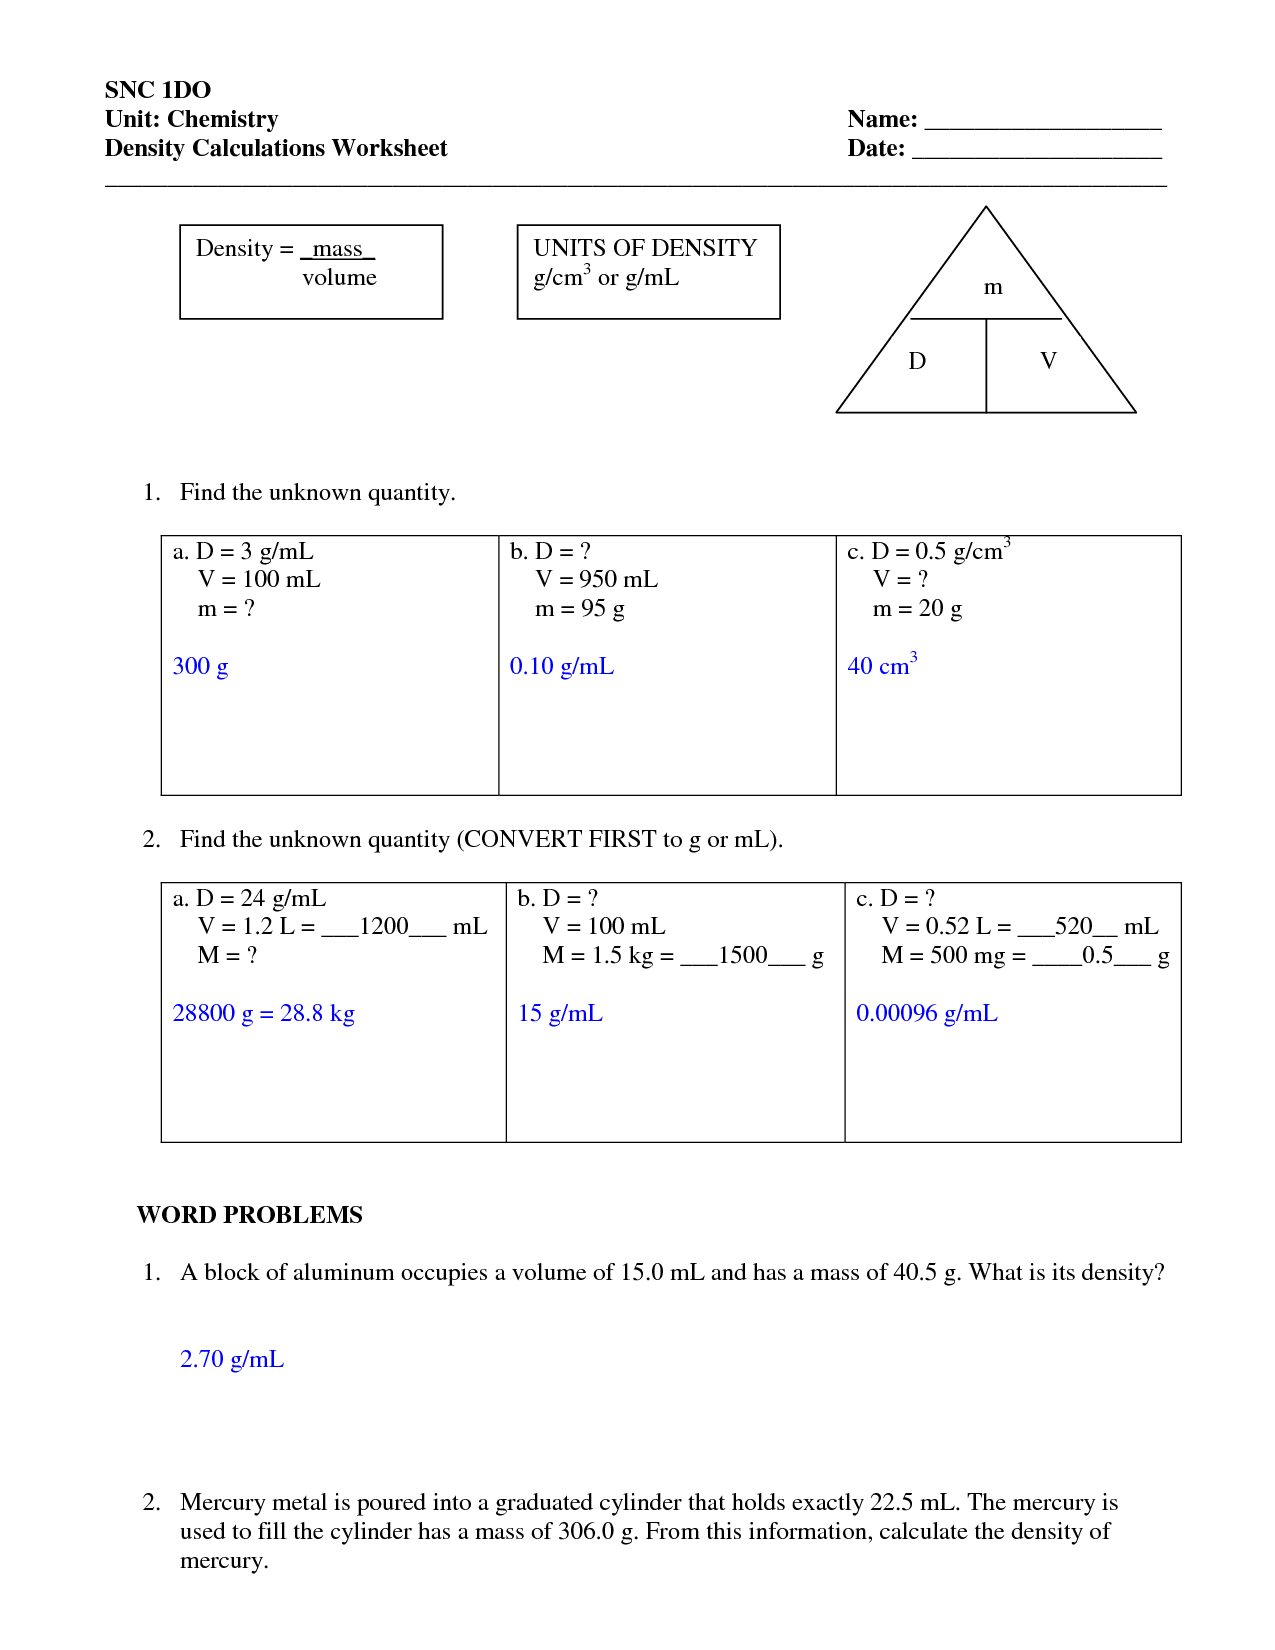 density worksheets with answers | Density Worksheet with Answers ...